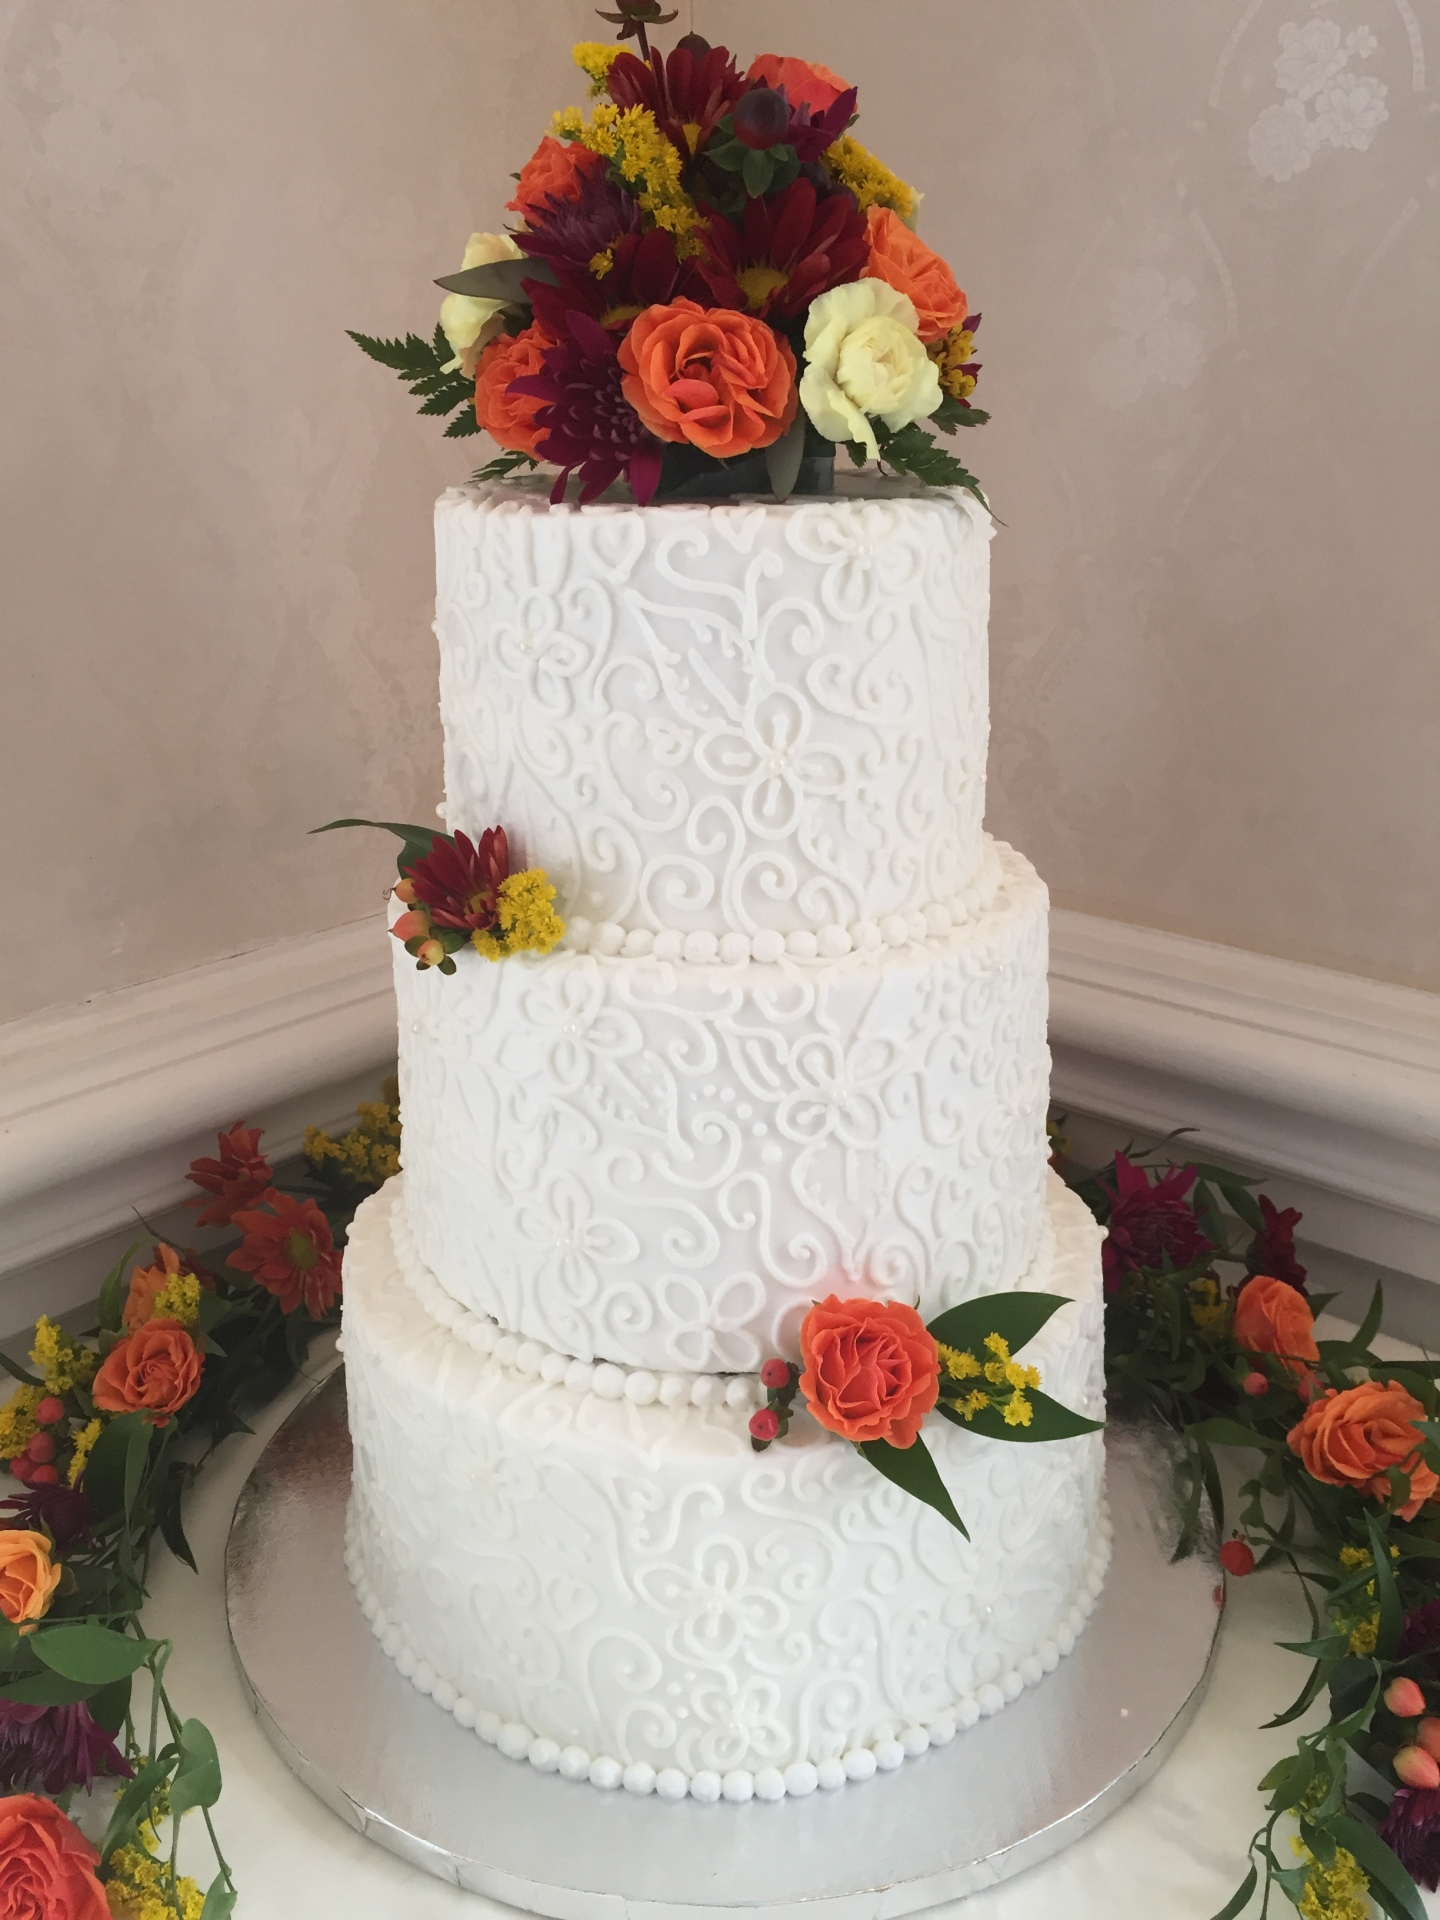 Freehand piping and fresh fall flowers